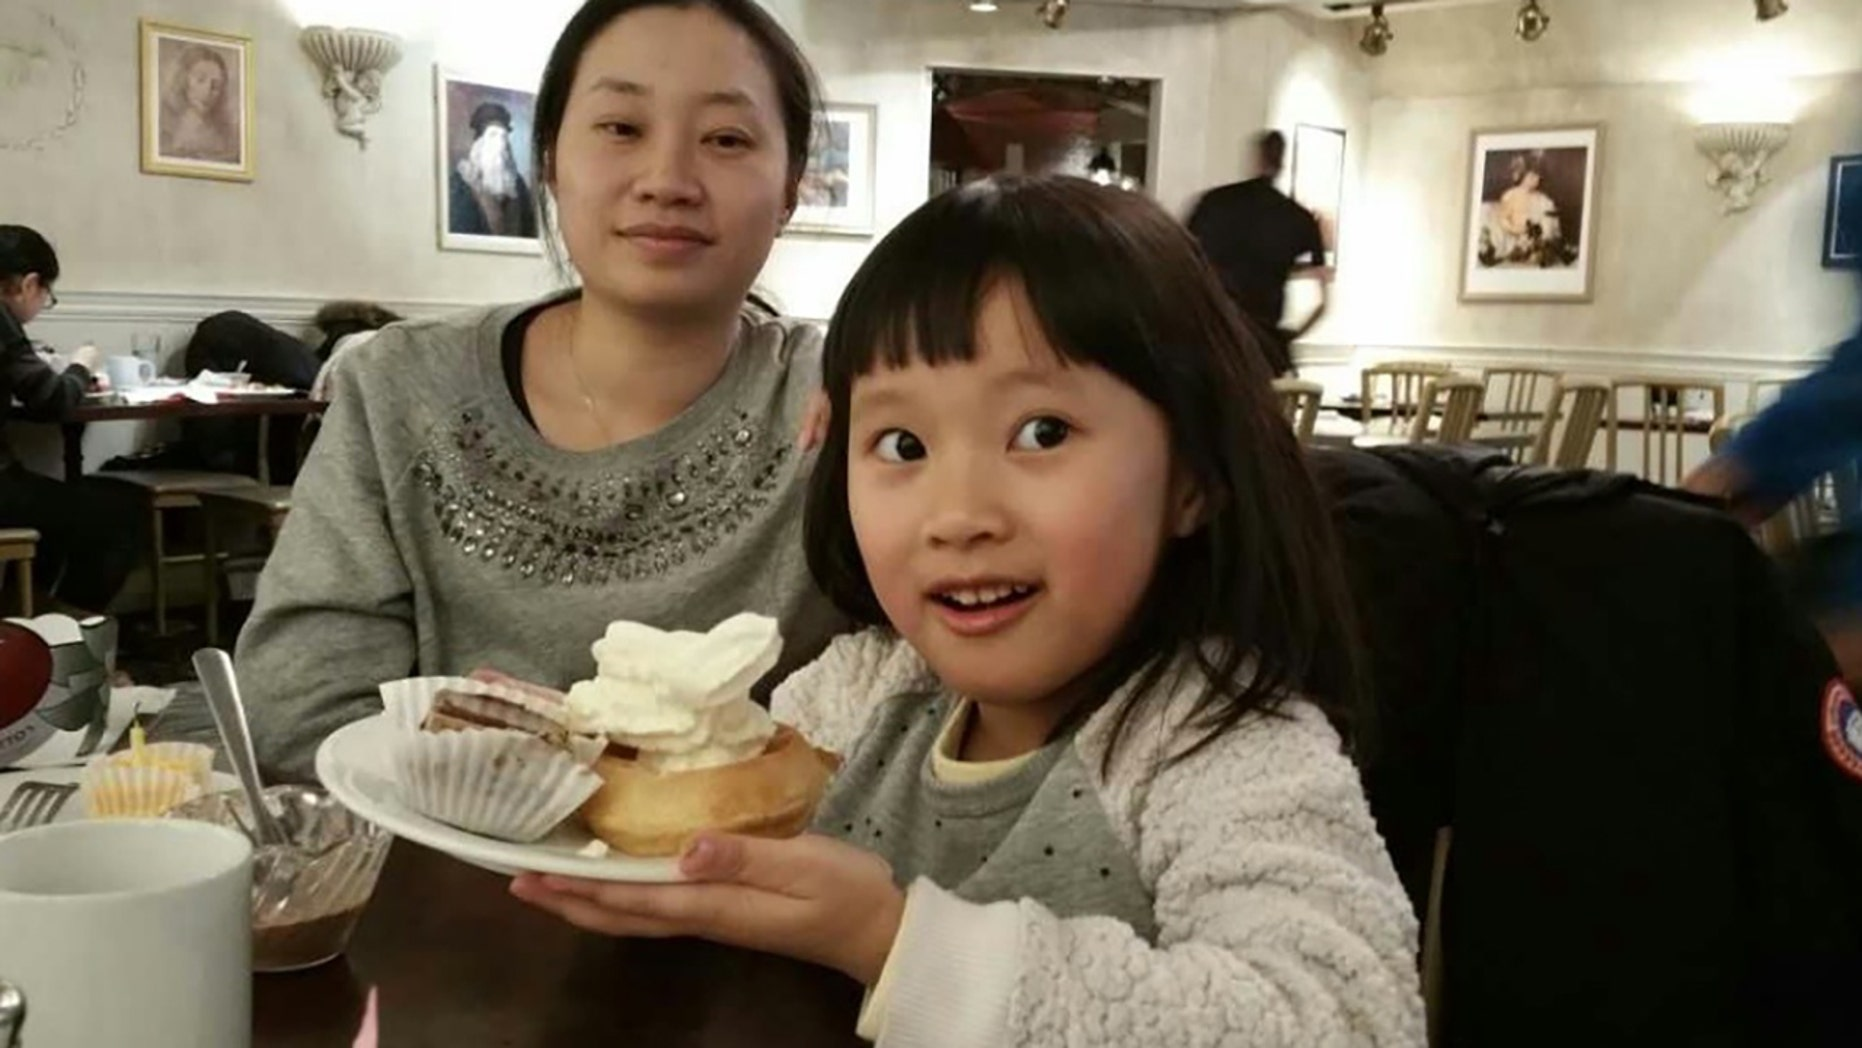 Canadian mother Tiffany Gong, 34, and her daughter Chloe, 5, died in an apparent drowning at an Ontario resort.